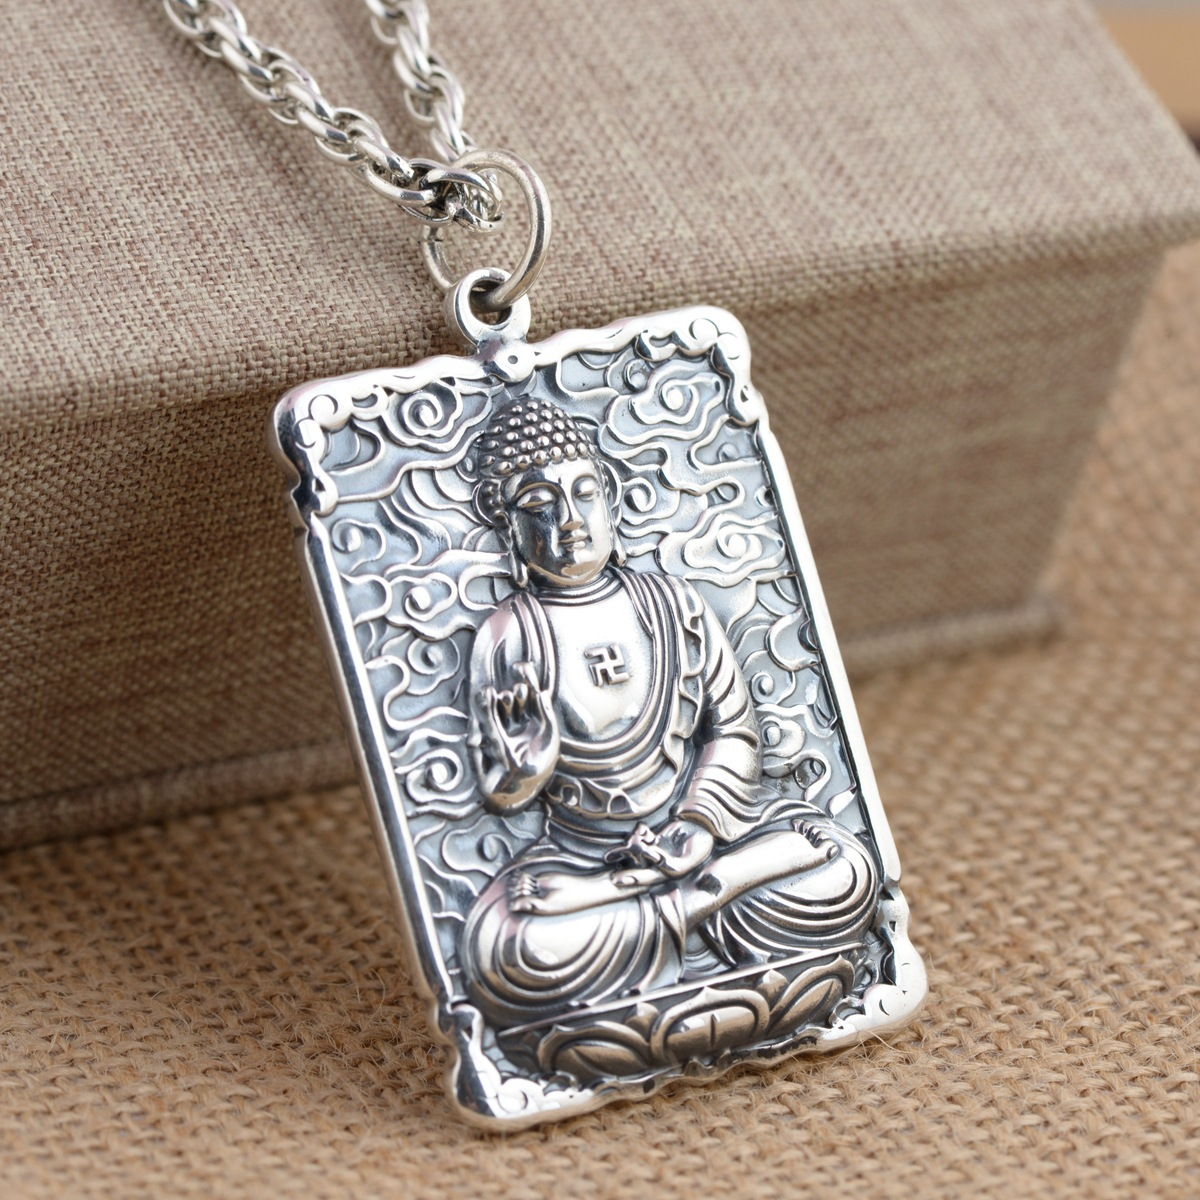 925 Sterling Silver Zodiac Life Buddha Pendant Patron Saint Pendant natural green buddha a buddism buddha pendant saint cut the life of buddha zodiac men and women necklace will day jade emerald